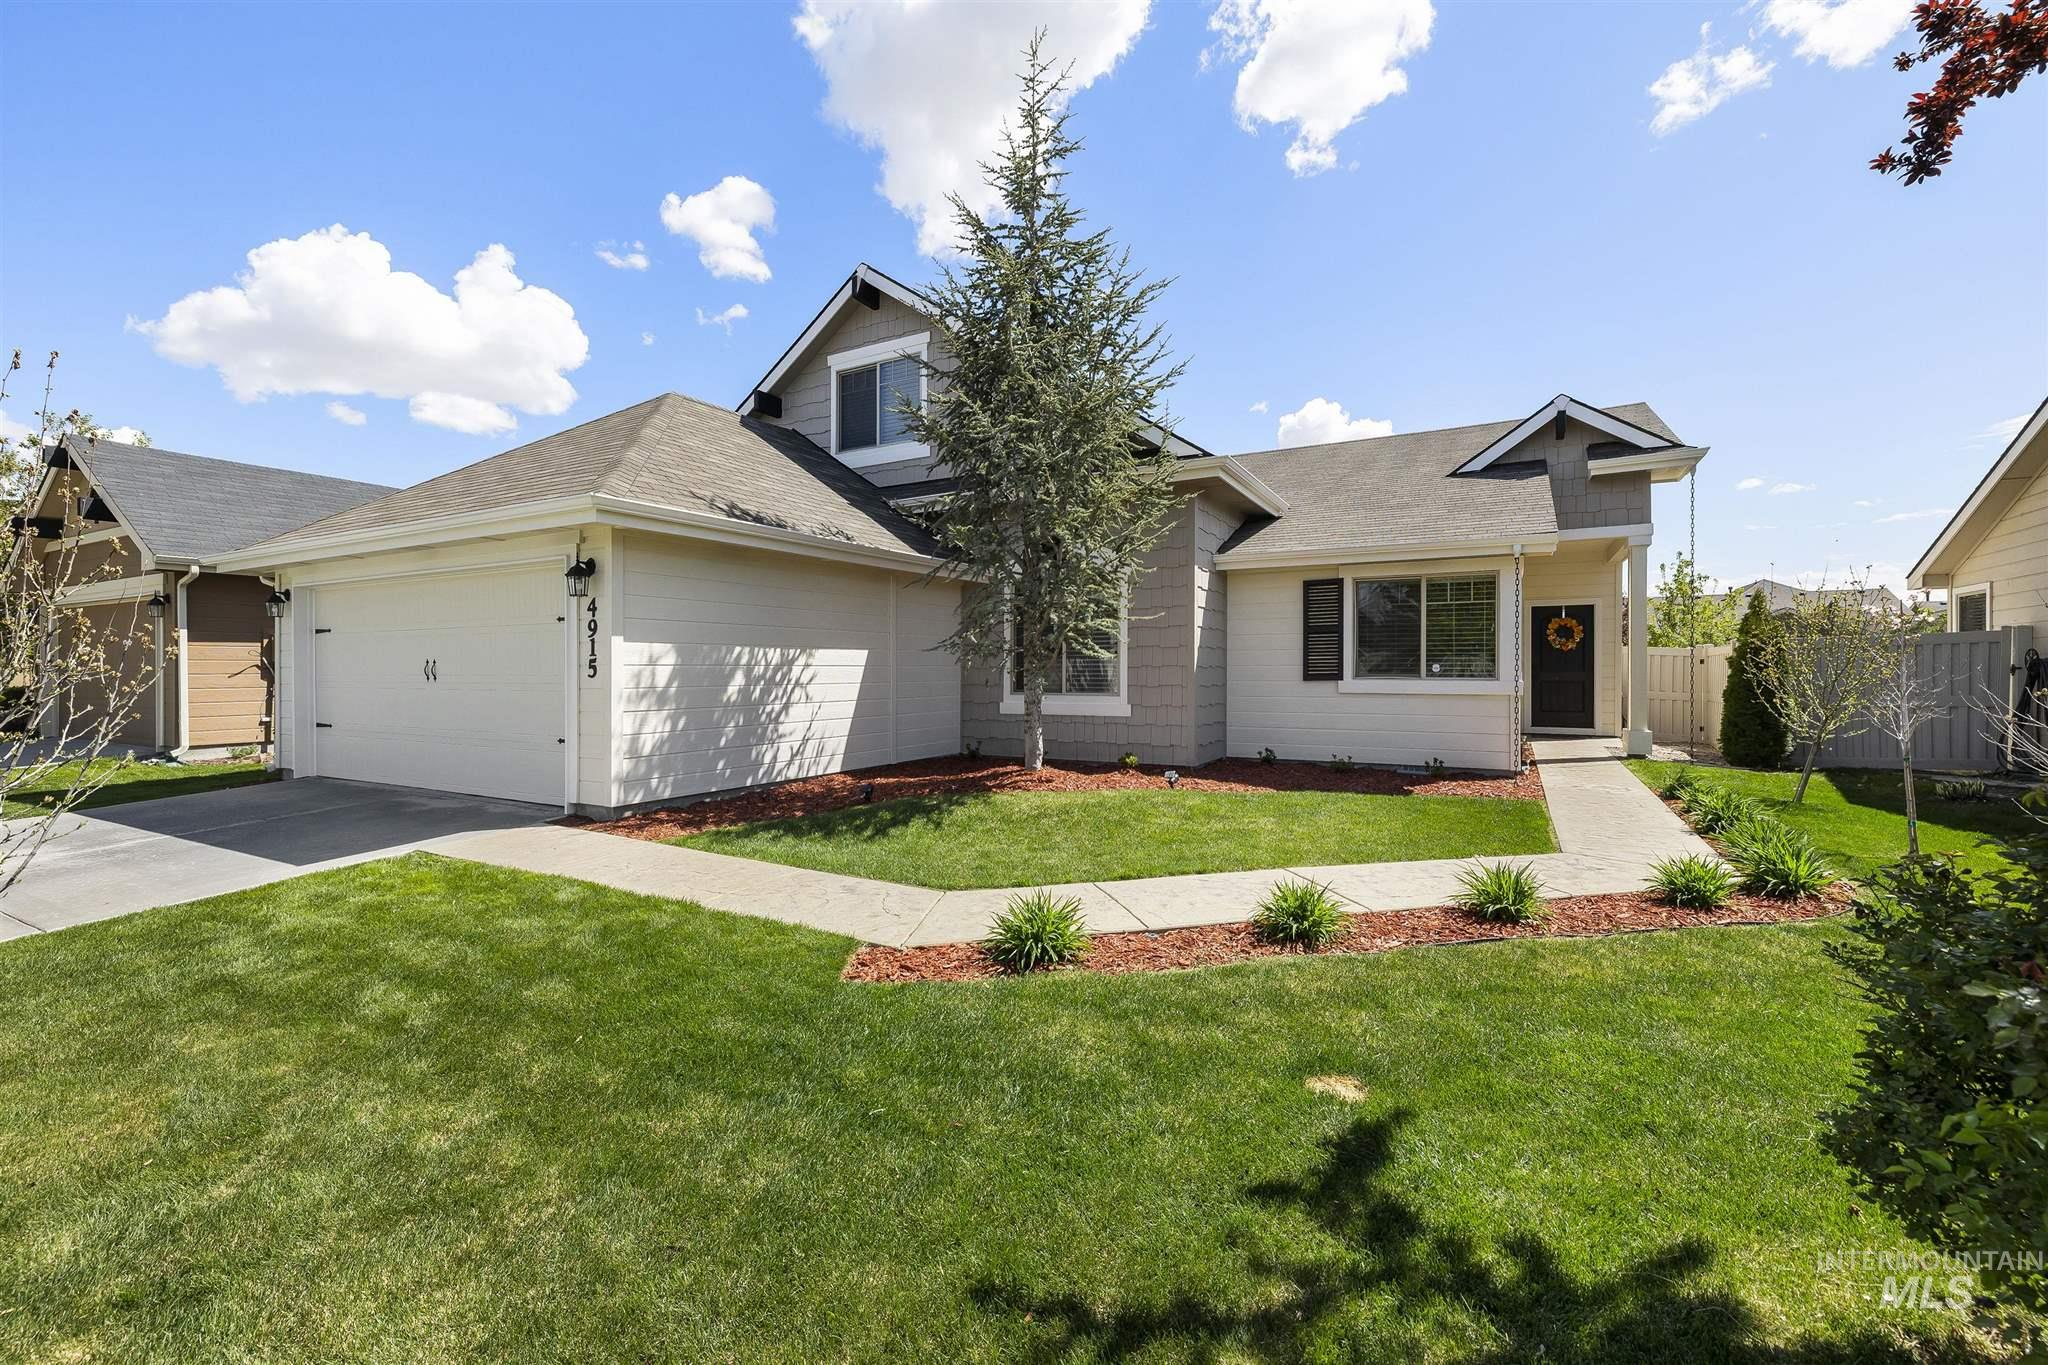 4915 W Astonte St Property Photo - Meridian, ID real estate listing